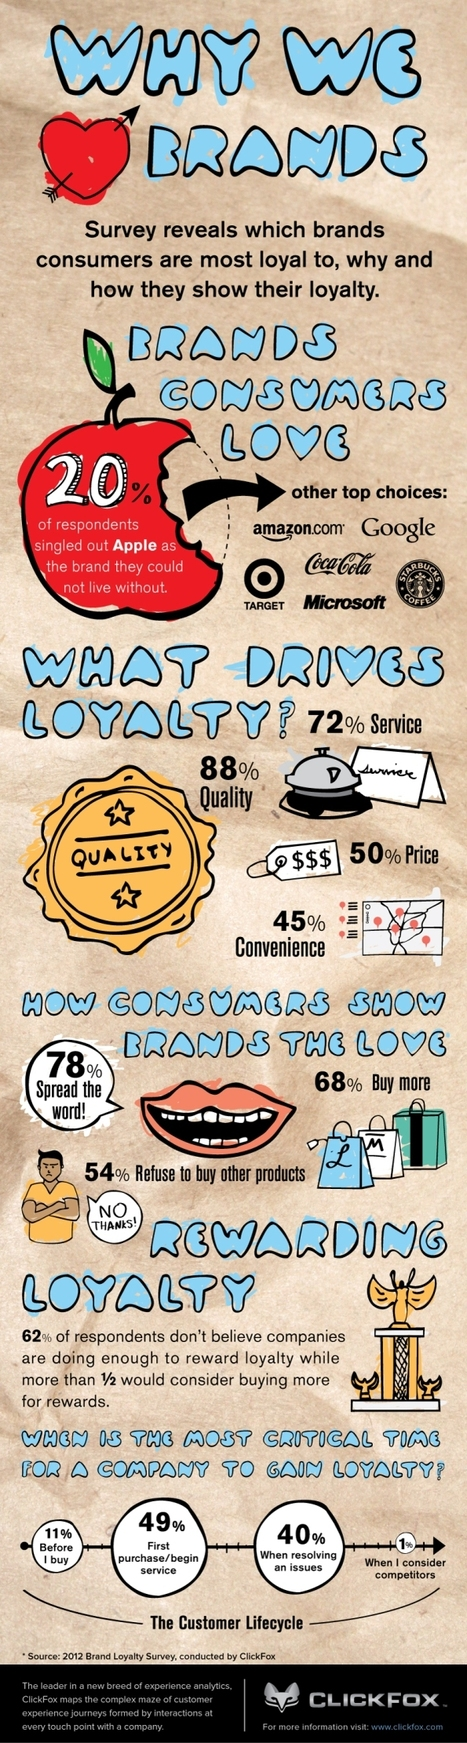 Brand Loyalty Survey, ClickFox | Marketing, PR & Communications | Scoop.it